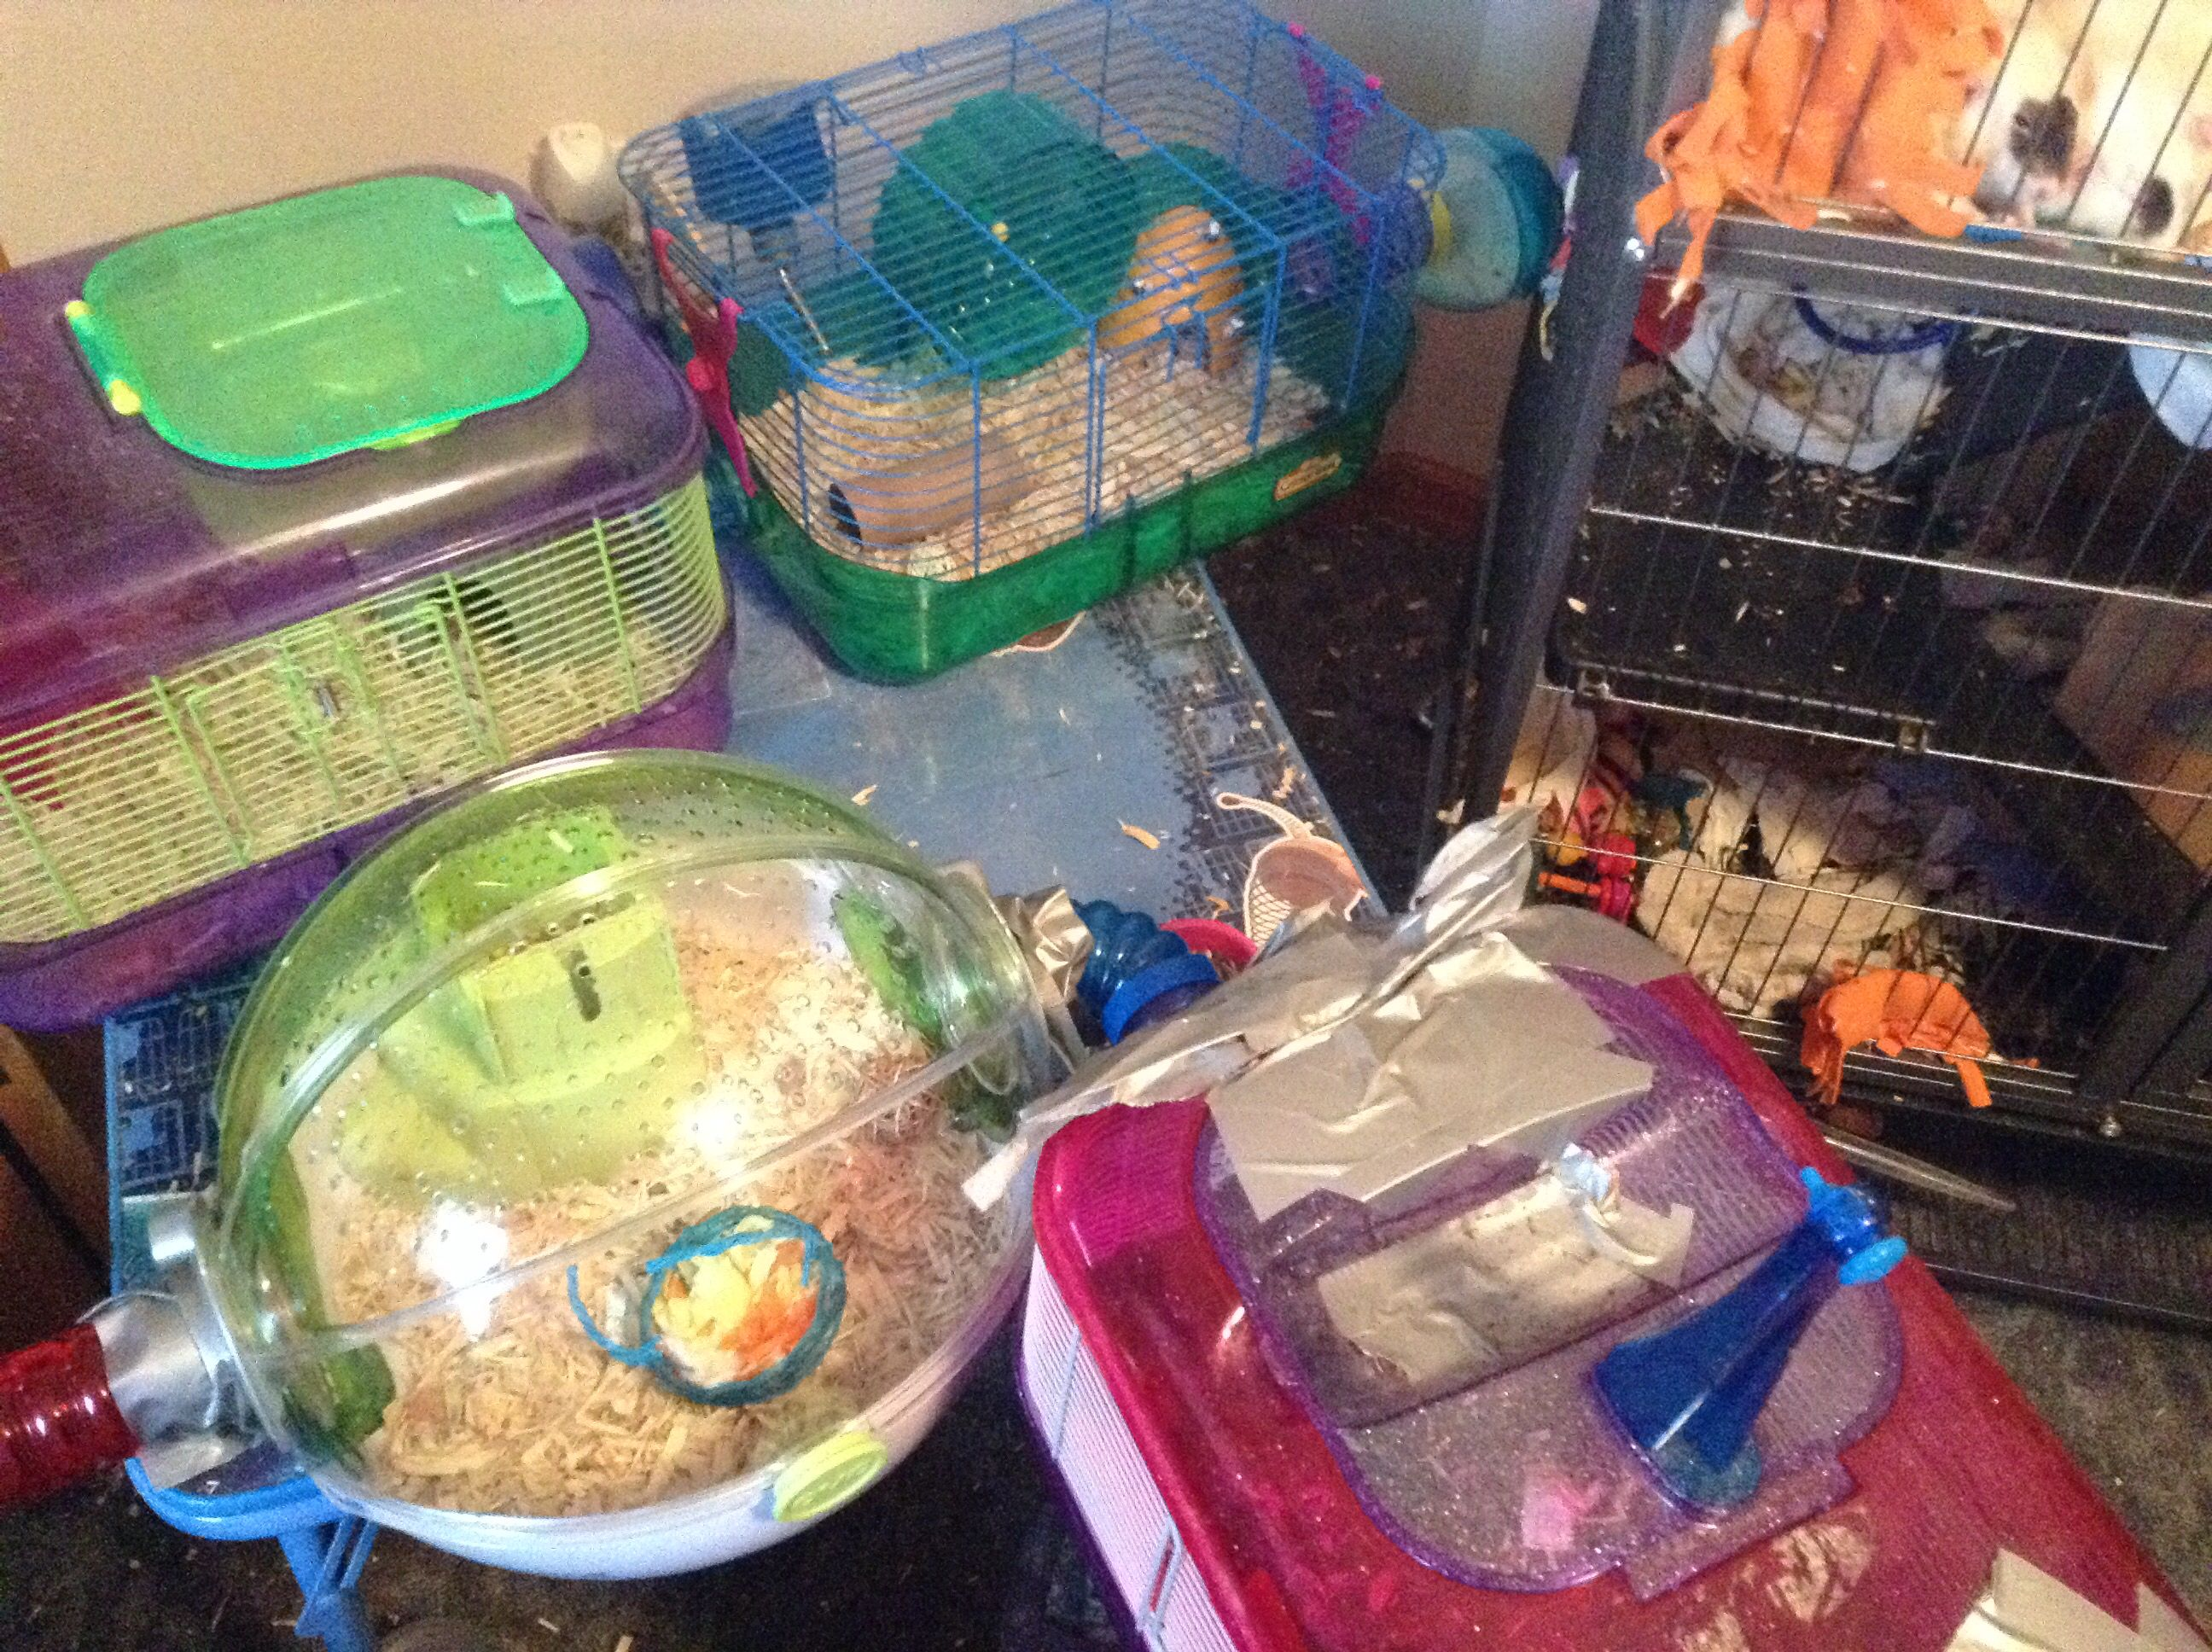 Crittertrail And Habitrail Ovo Mouse Cage Home To My Mice Oreo